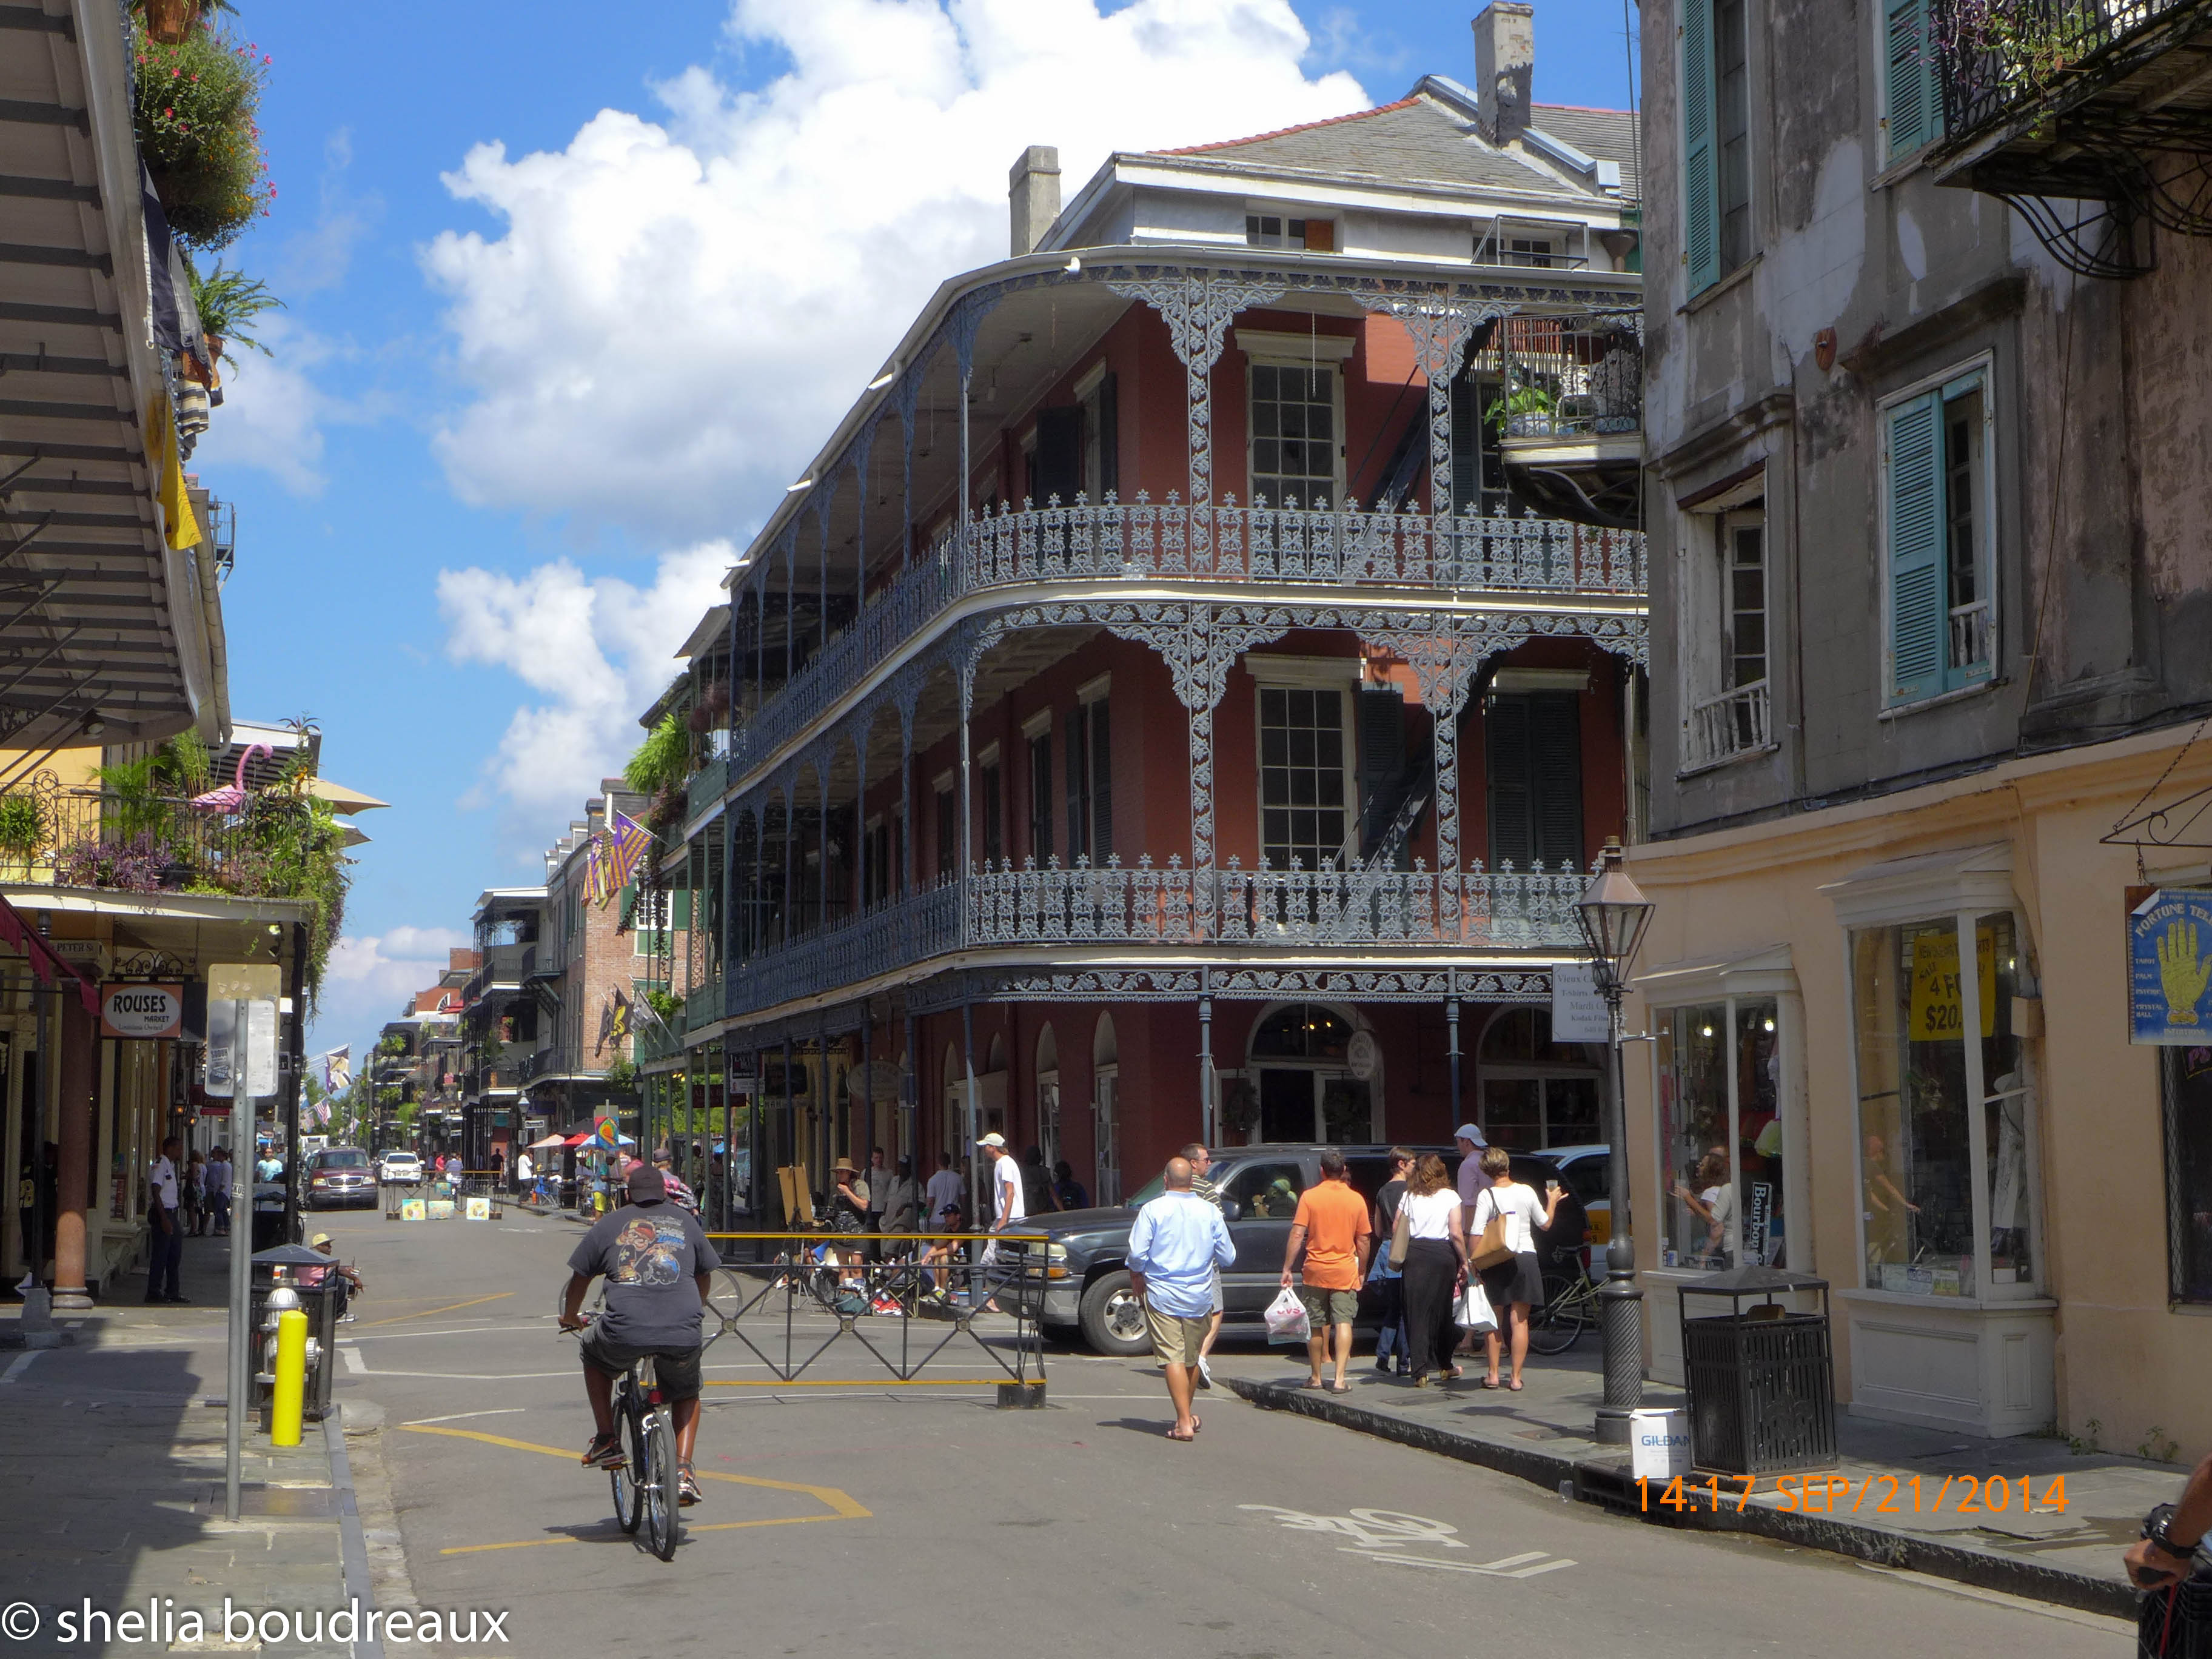 This is typical French Quarter architecture.  The Spanish occupied Louisiana and had much influence on the way the balconies were done.  This style can be seen in parts of Spain now days as well.